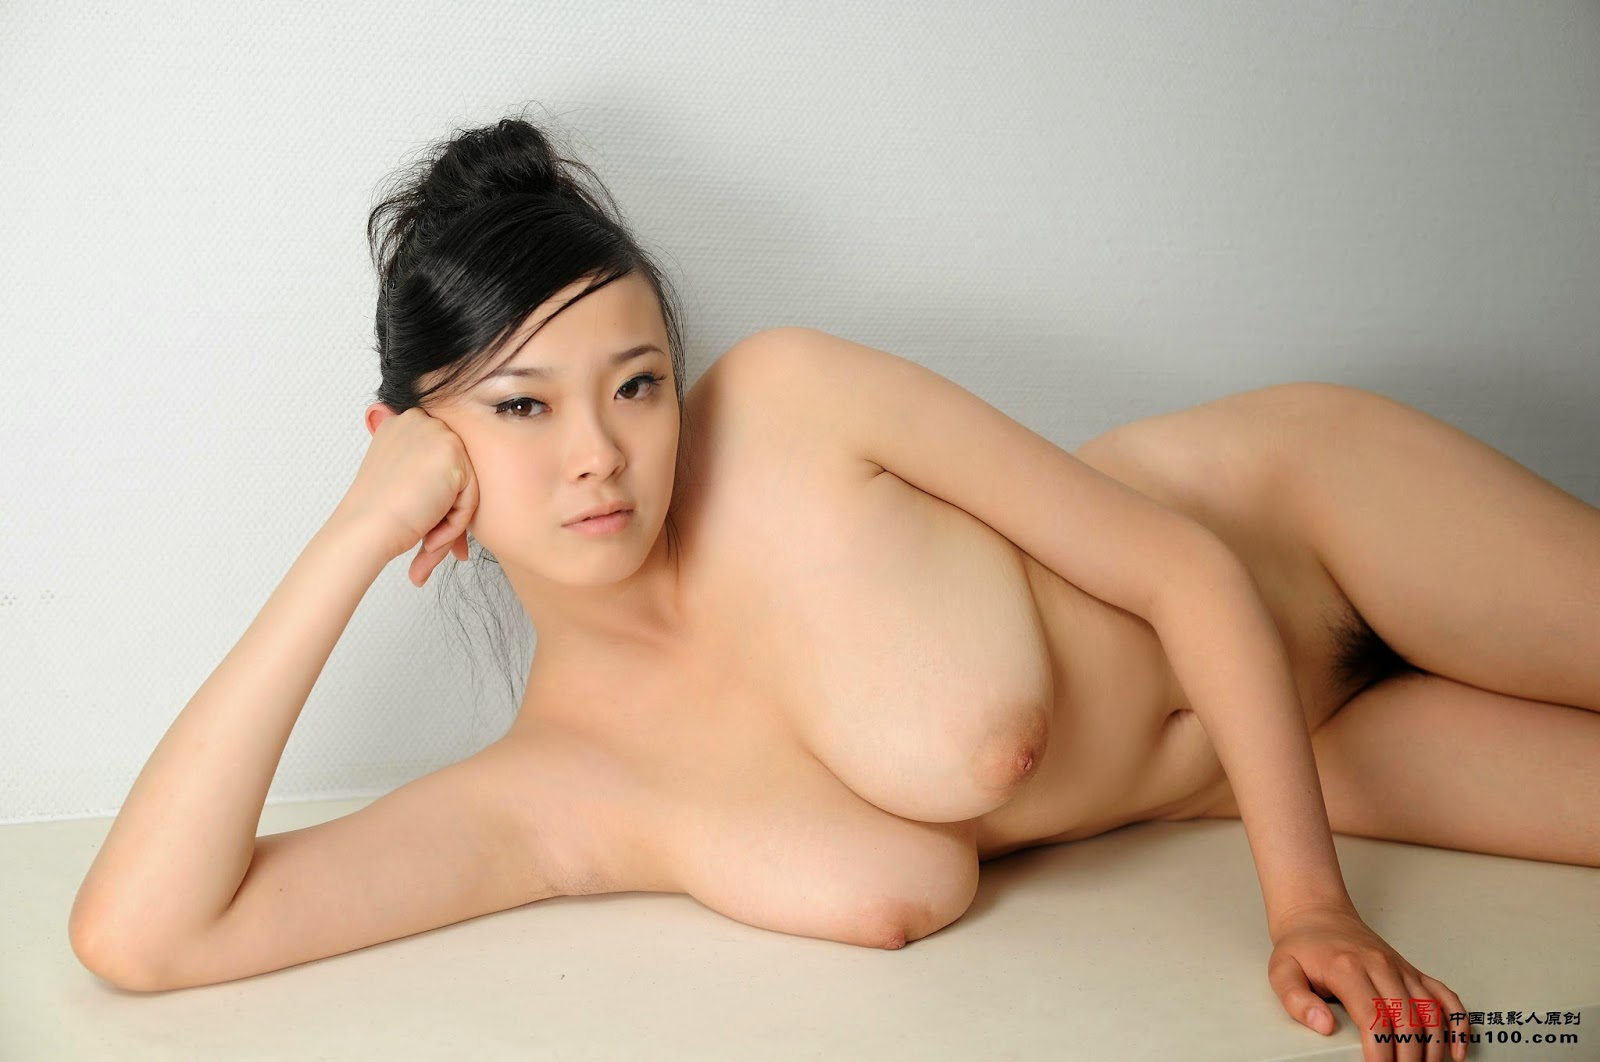 CHINA XXX GIRL HOT have forgotten